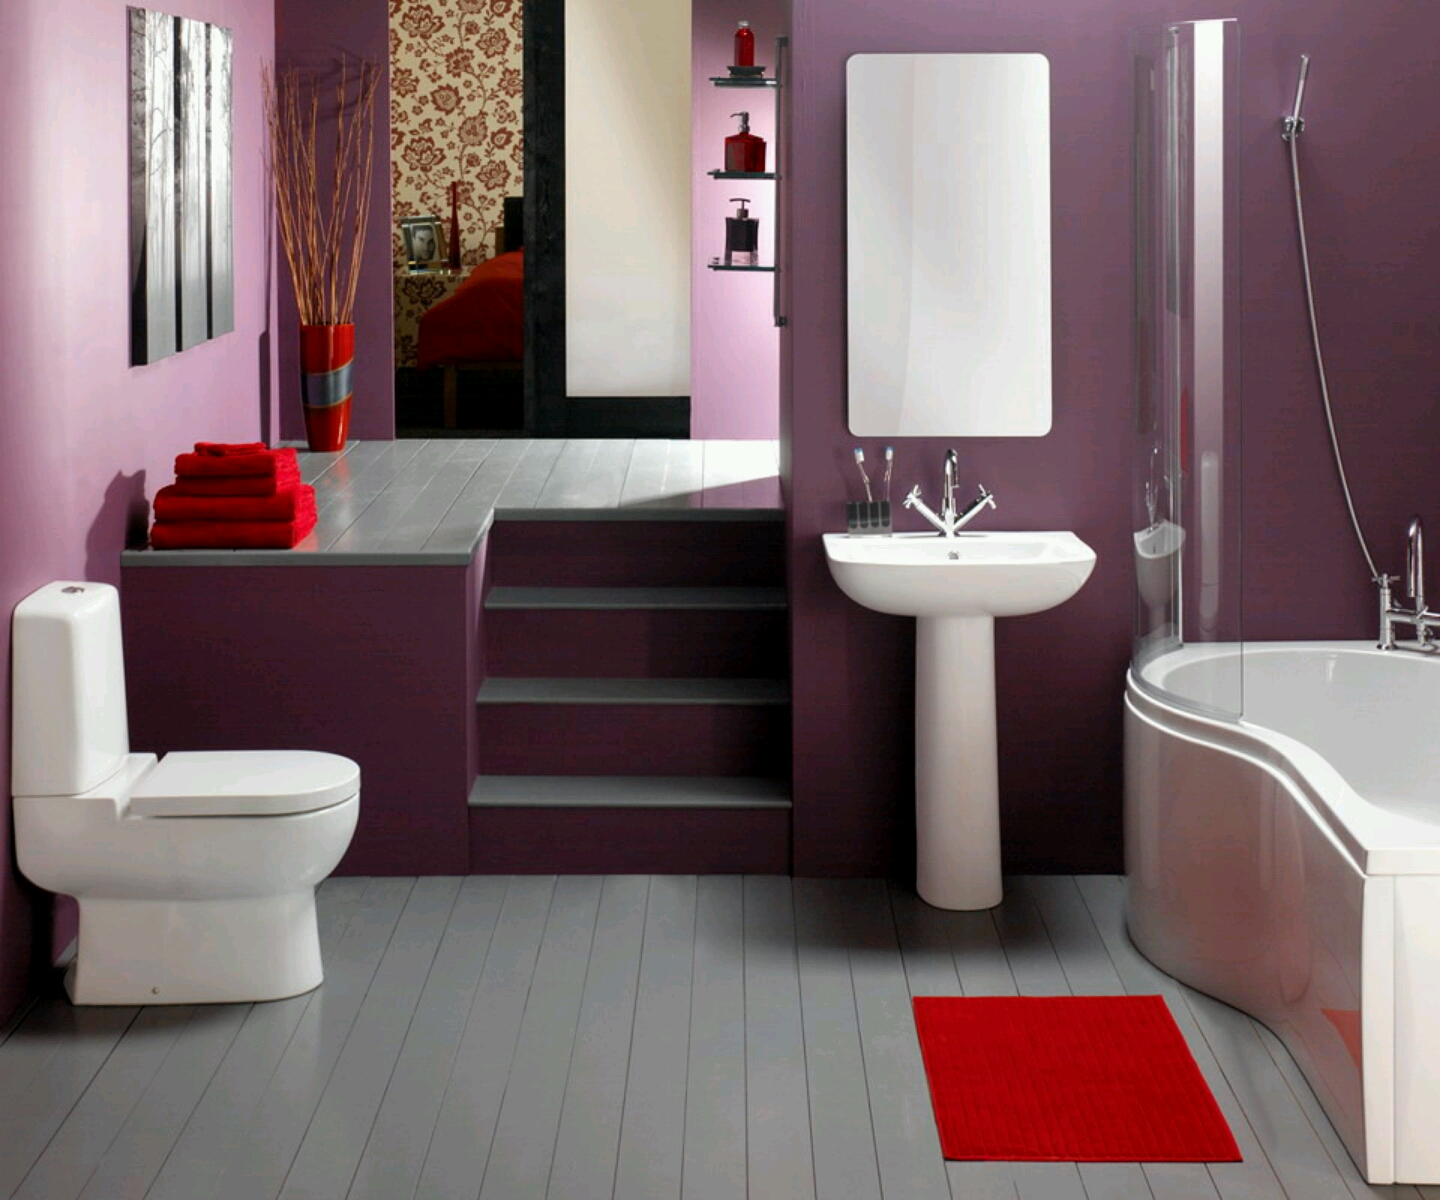 New home designs latest luxury modern bathrooms designs for Good bathroom ideas